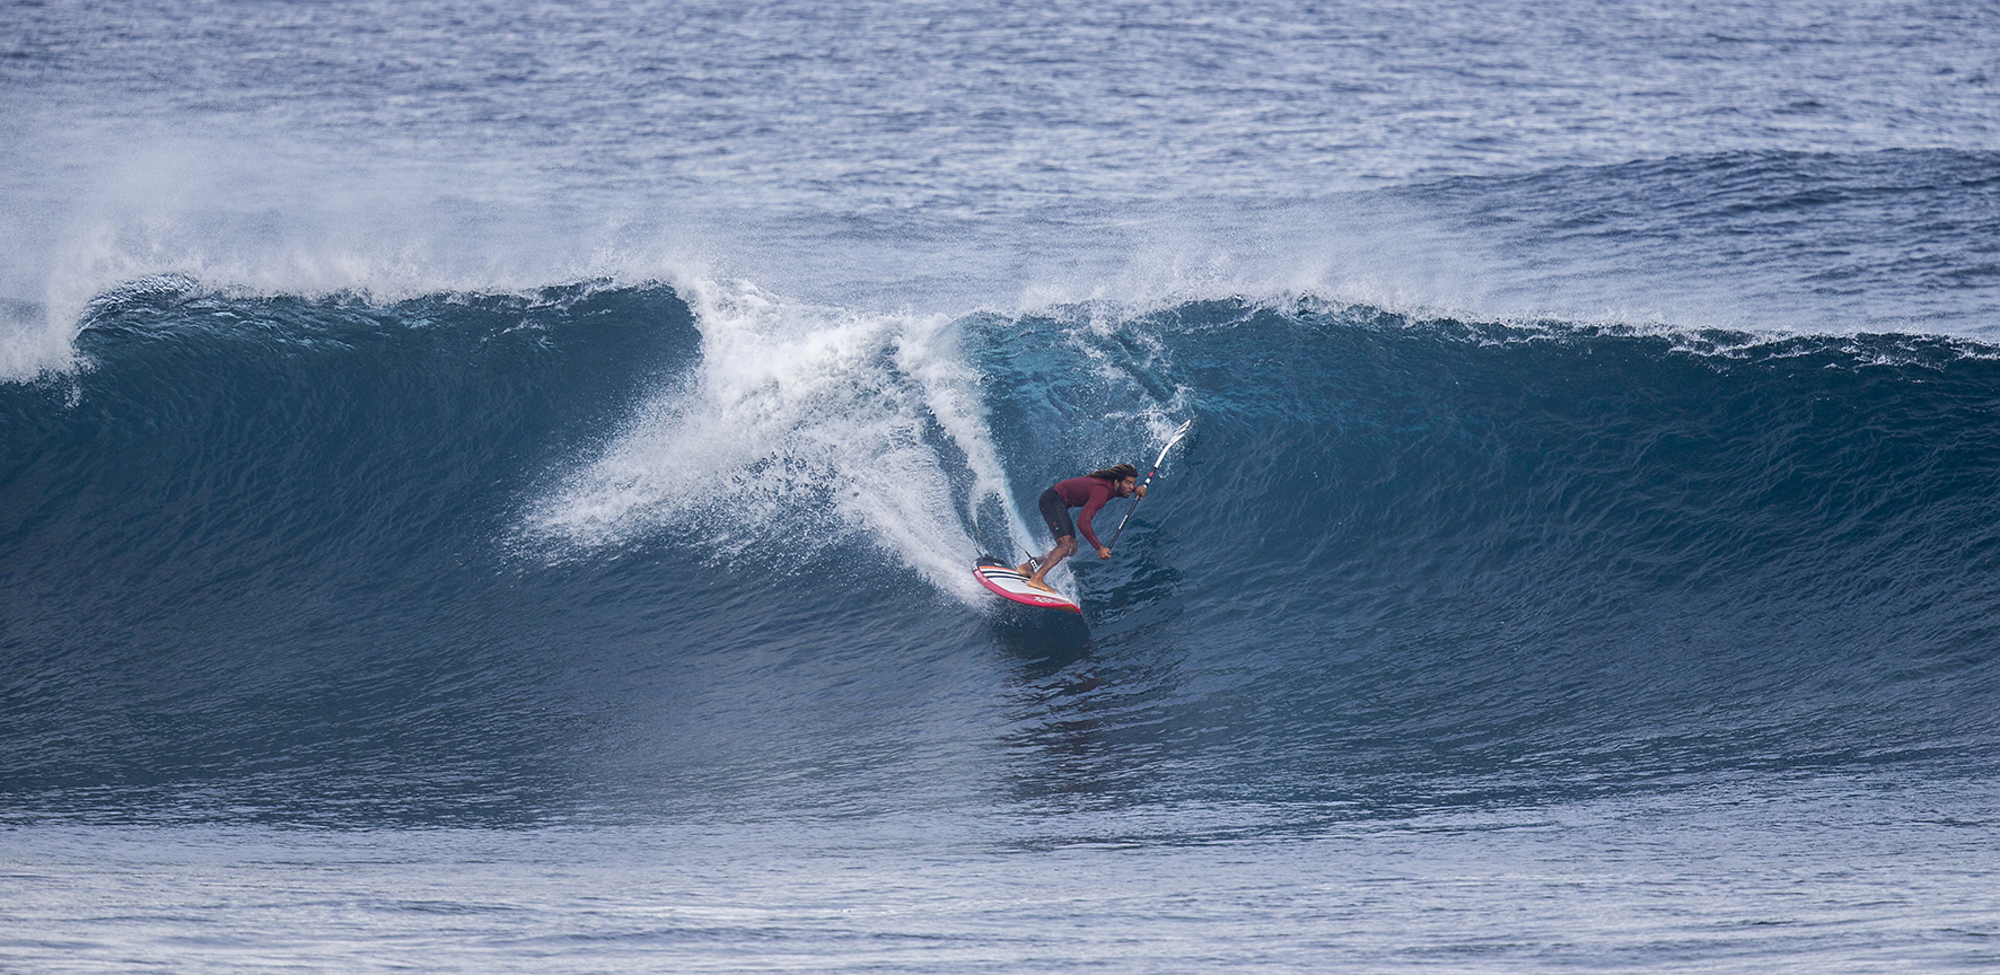 Airton_Prowave_LTD-FANATIC_SUP_DY_6_Disc1_2654.jpg